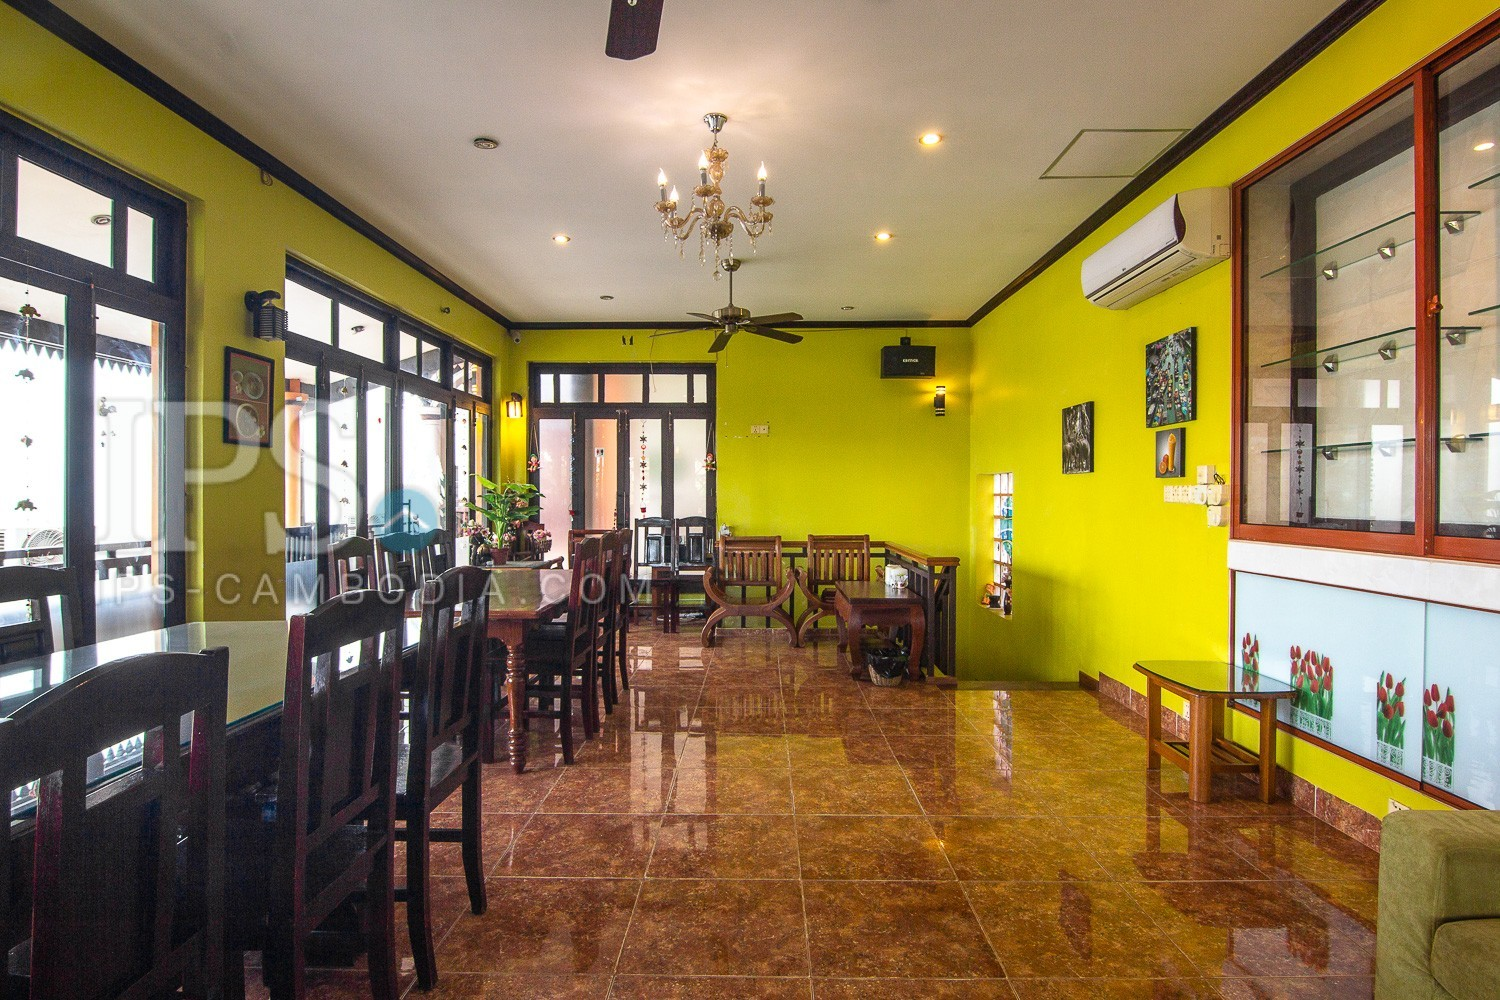 4 Bedroom House With Restaurant For Sale - Night Market, Siem Reap